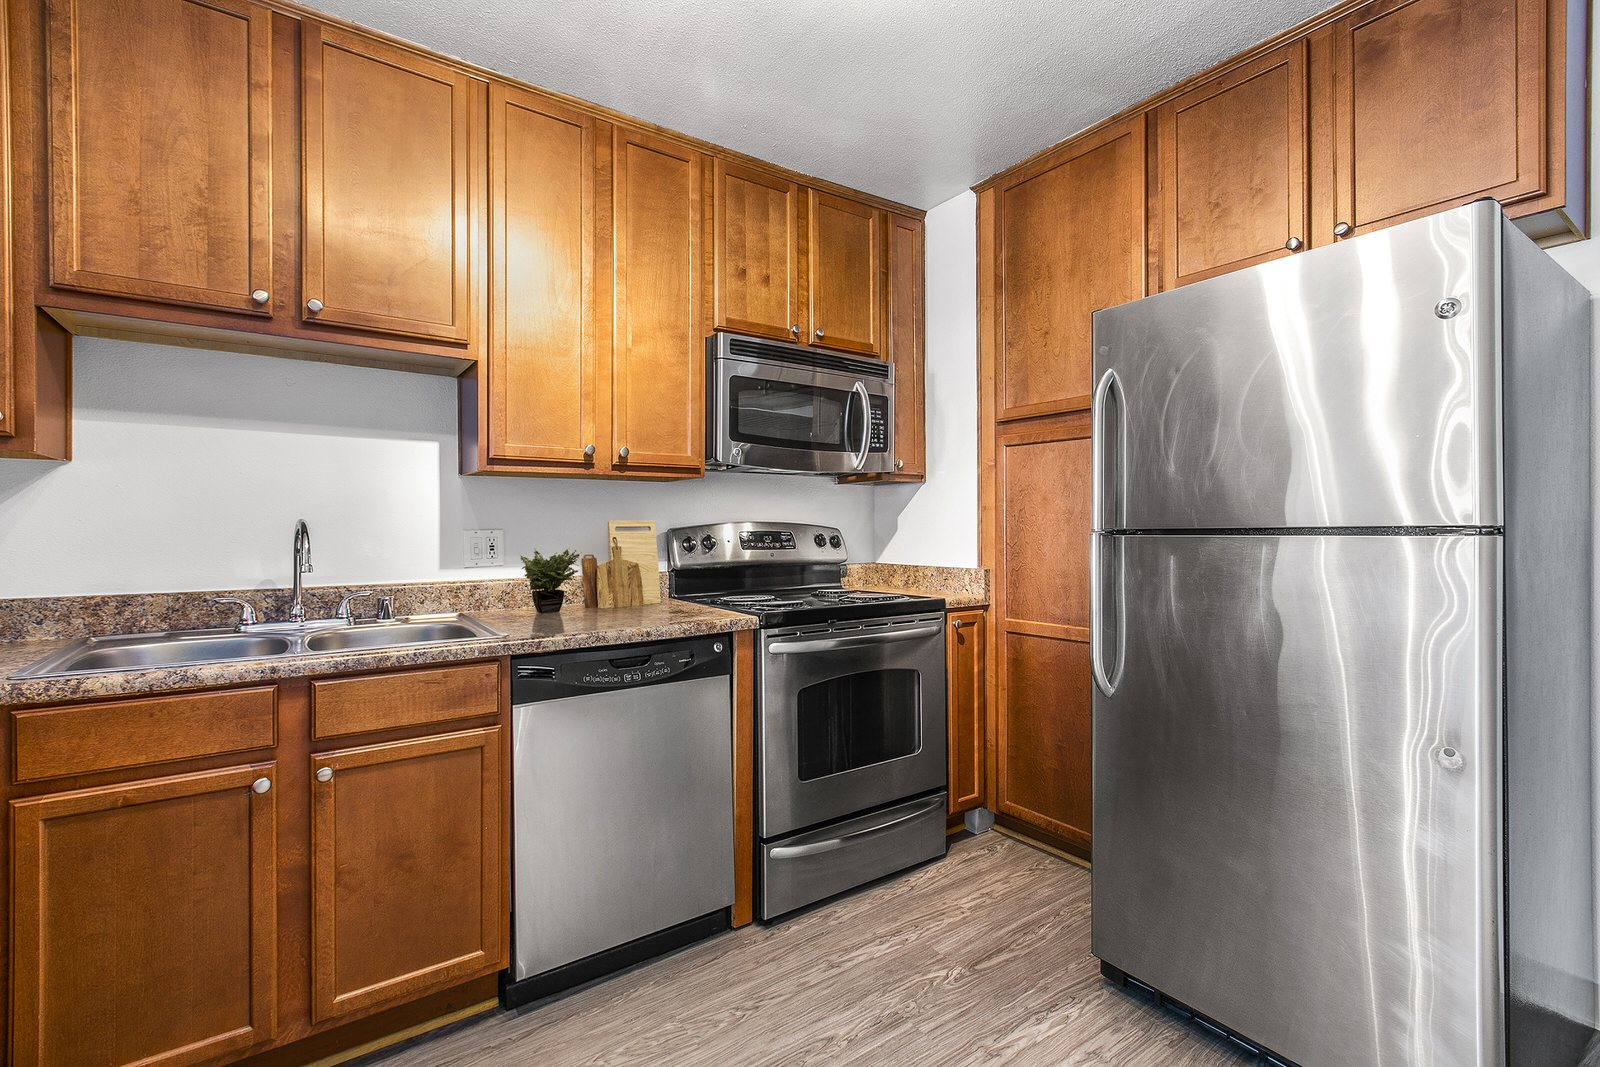 Apartments for Rent in Torrance, CA - Milano Kitchen with Stainless Steel Appliances, Wood Cabinets, and Granite Countertops